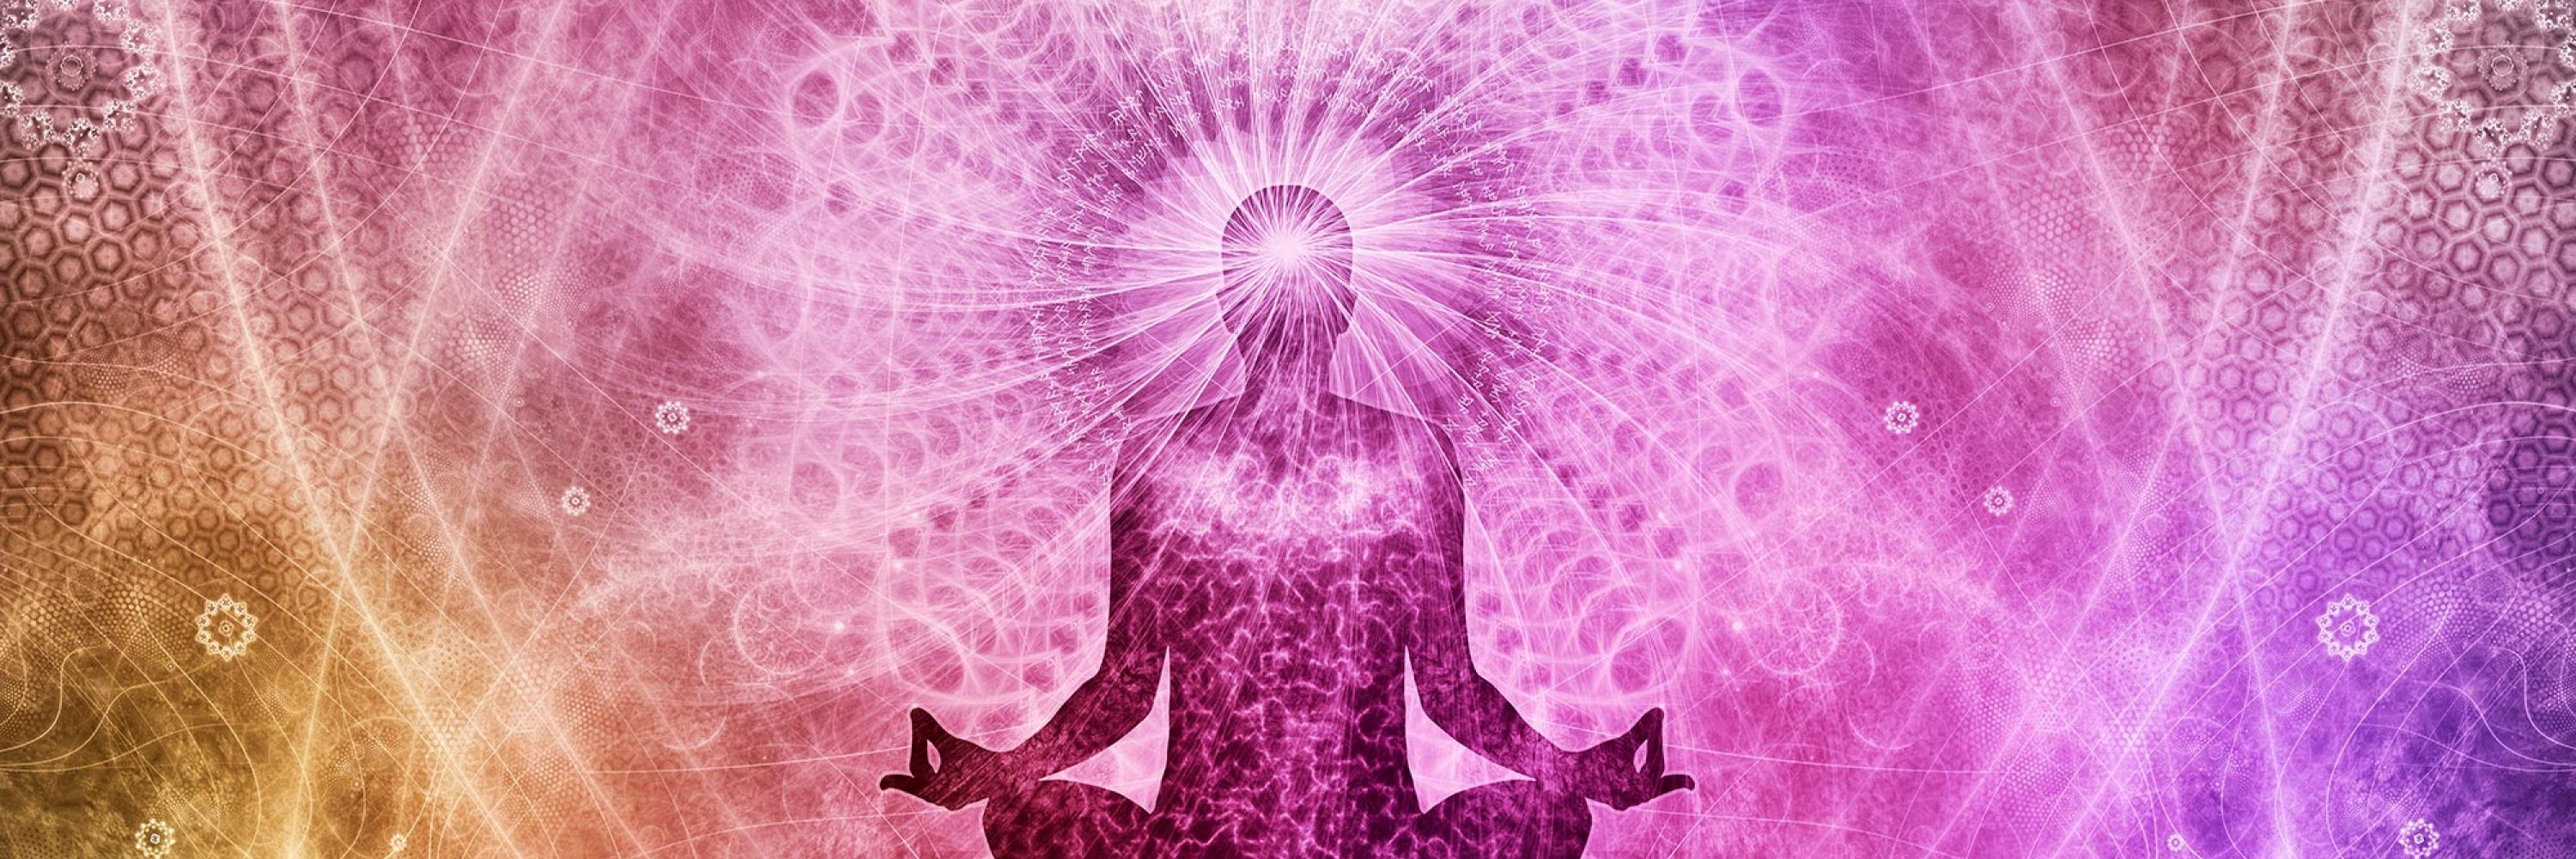 Is Consciousness Continuous or Discrete?